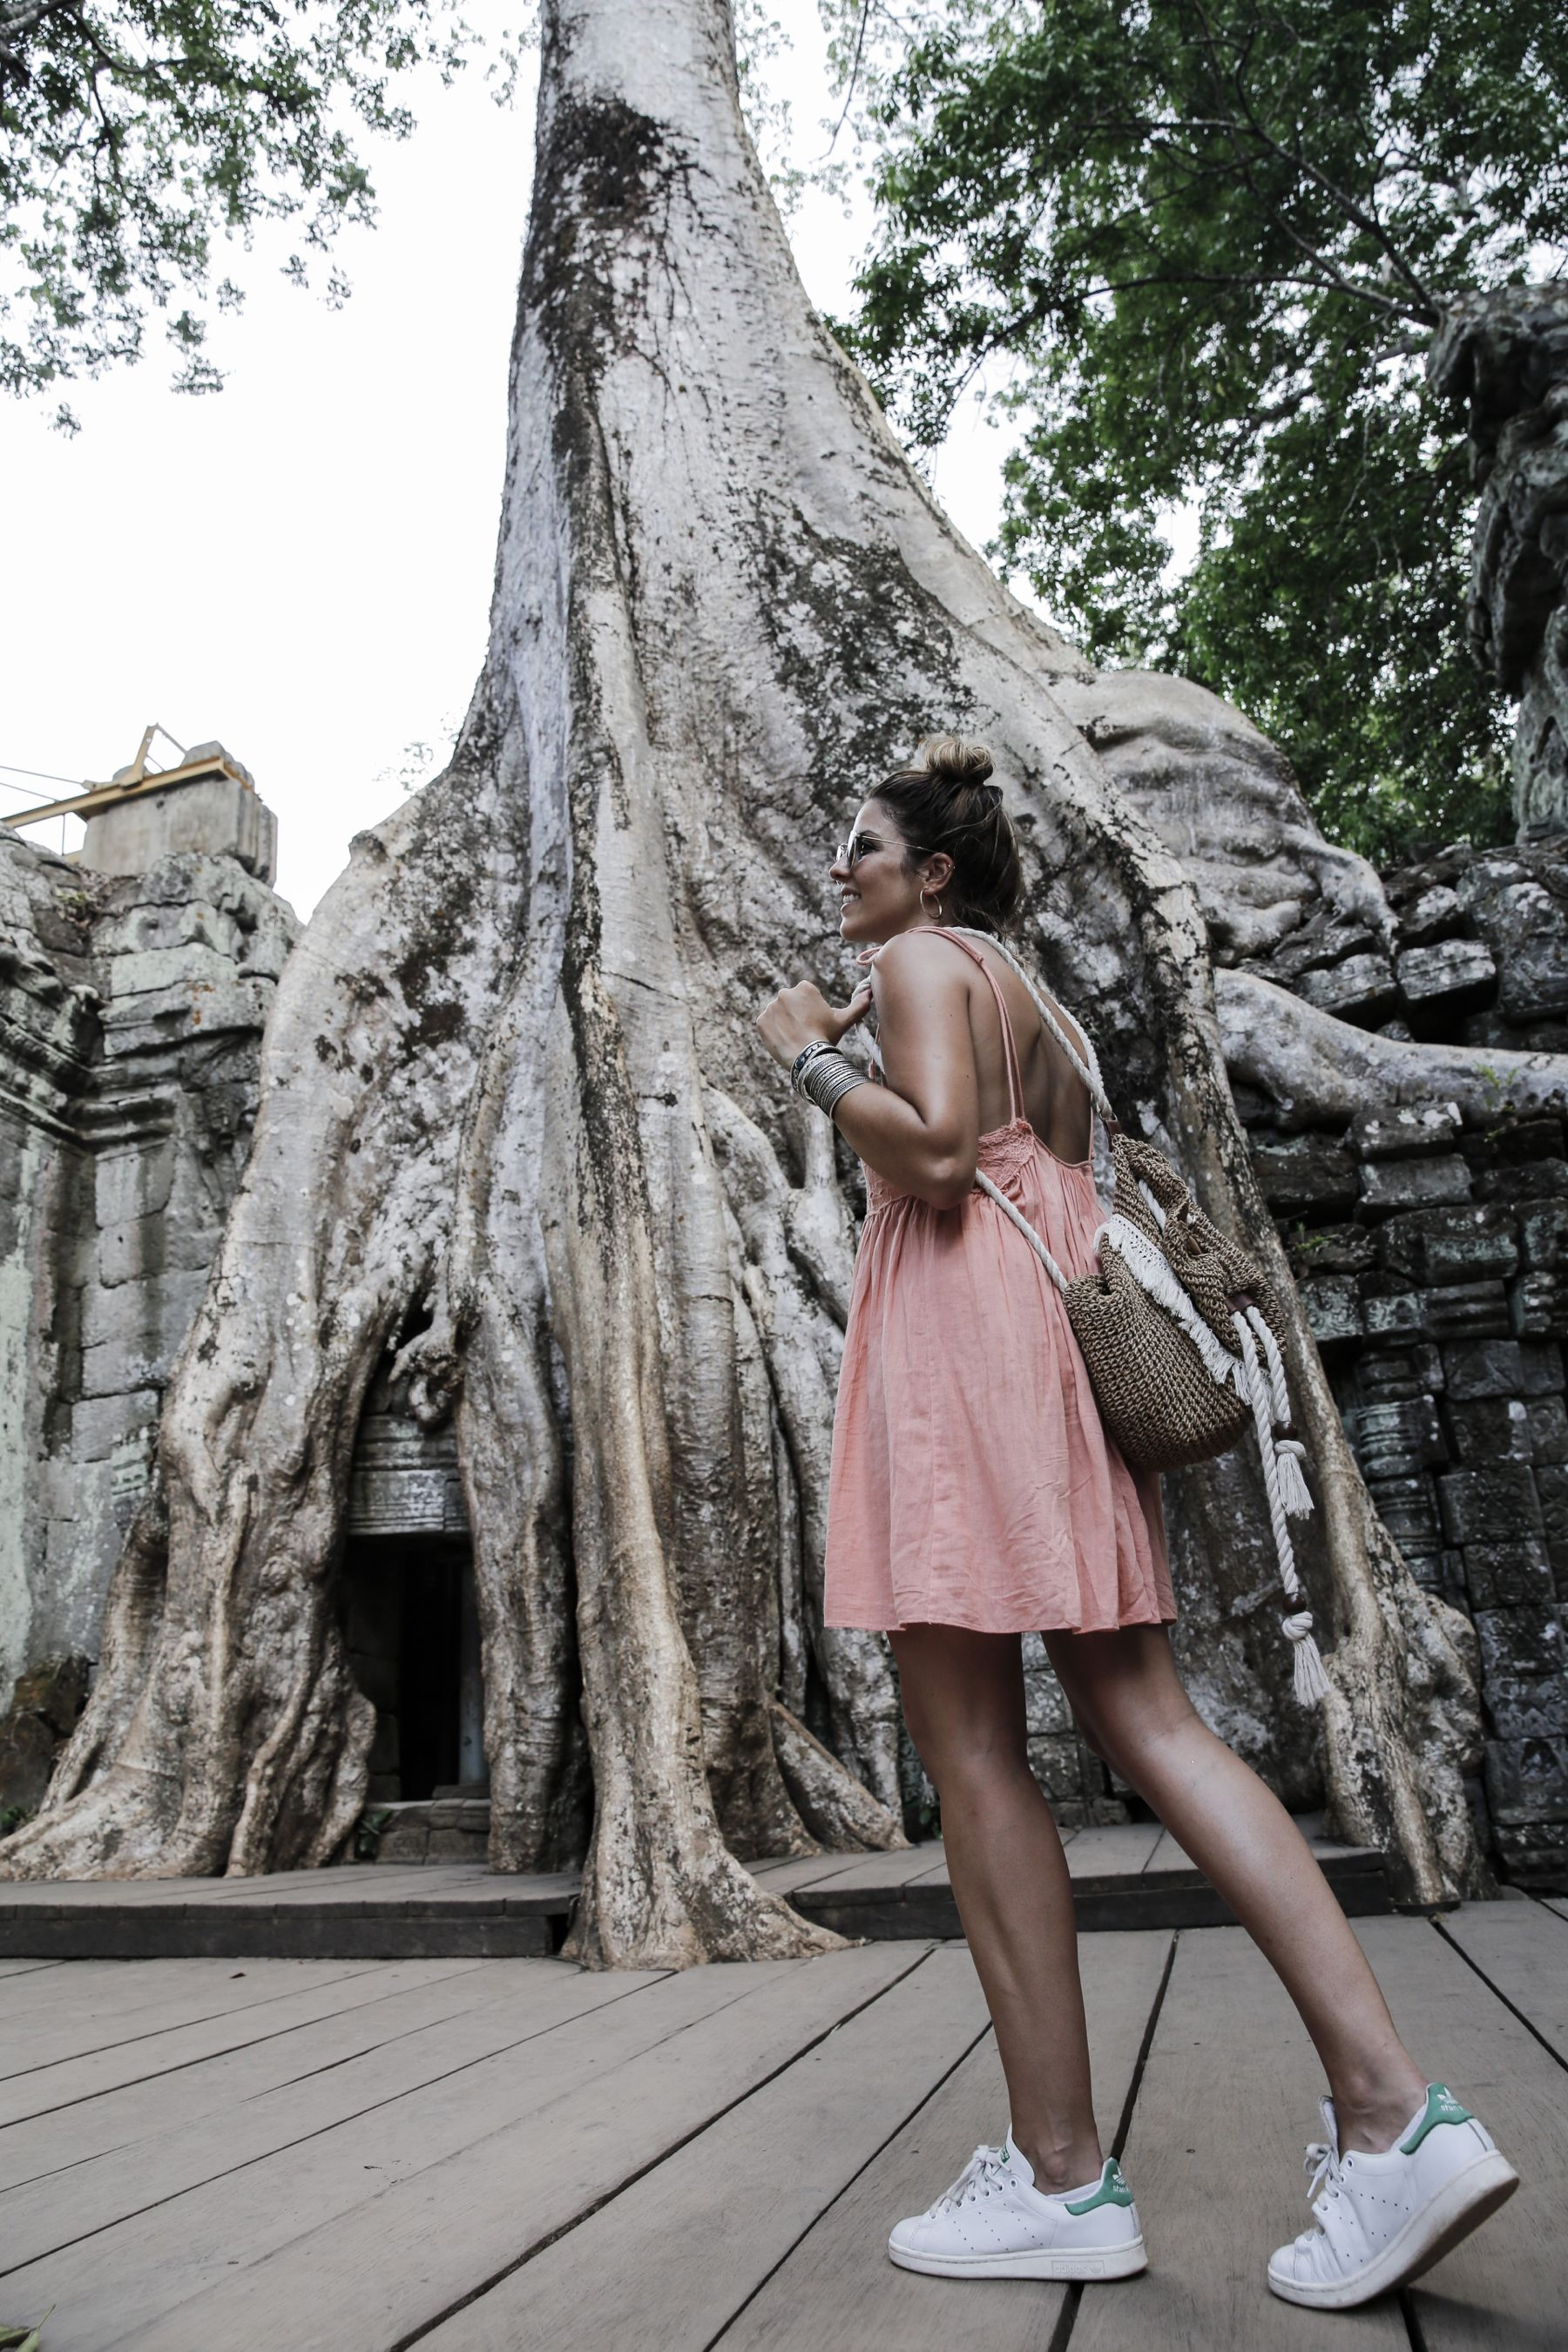 camboya cambodia angkor wat trendy taste summer trip outfit look dress sneakers stan smith vestido zapatillas asos adidas _42